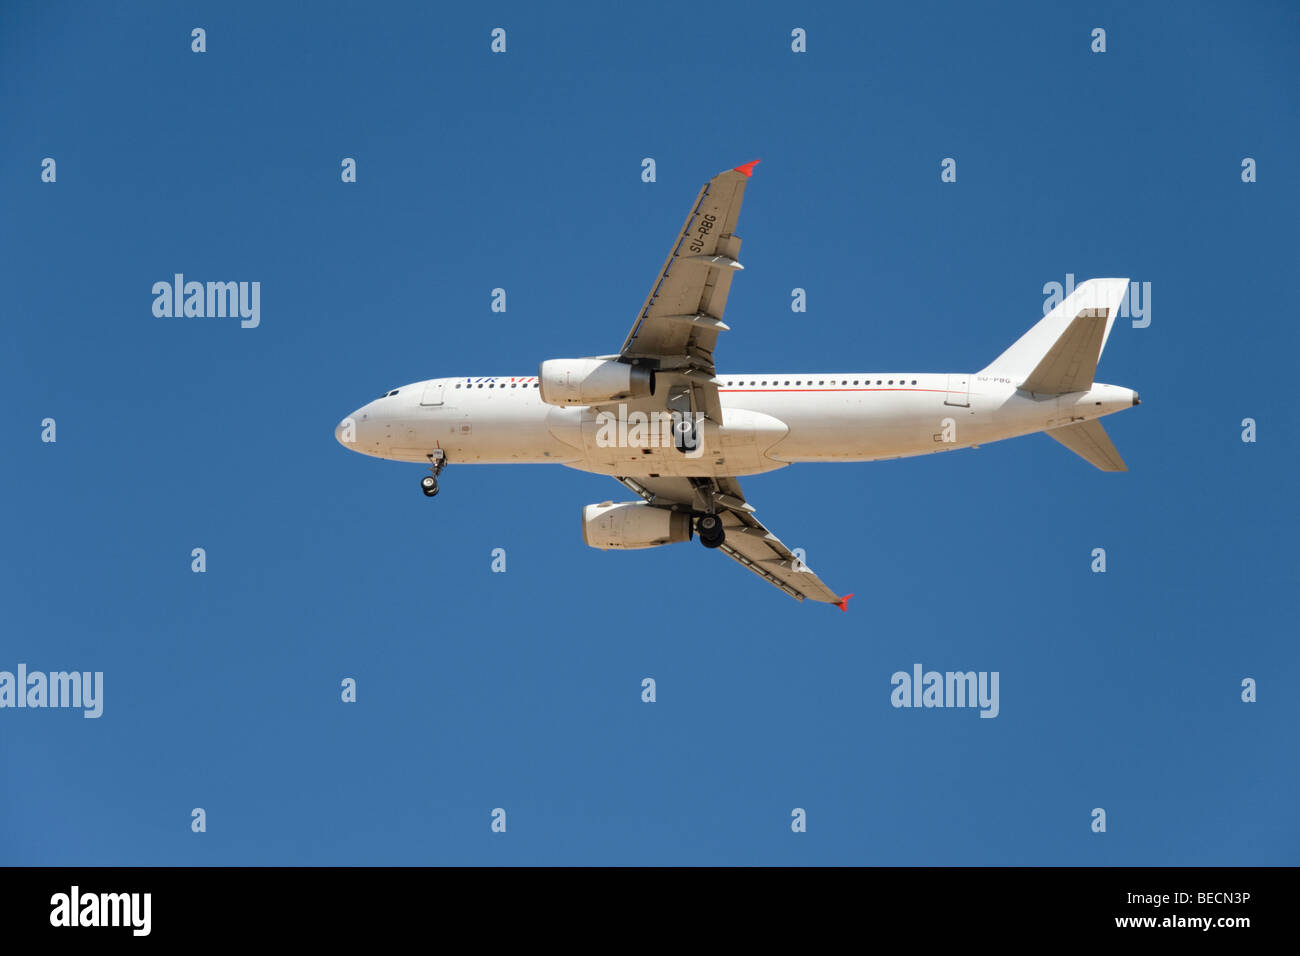 Air Memphis, Airbus A320-233 - Stock Image